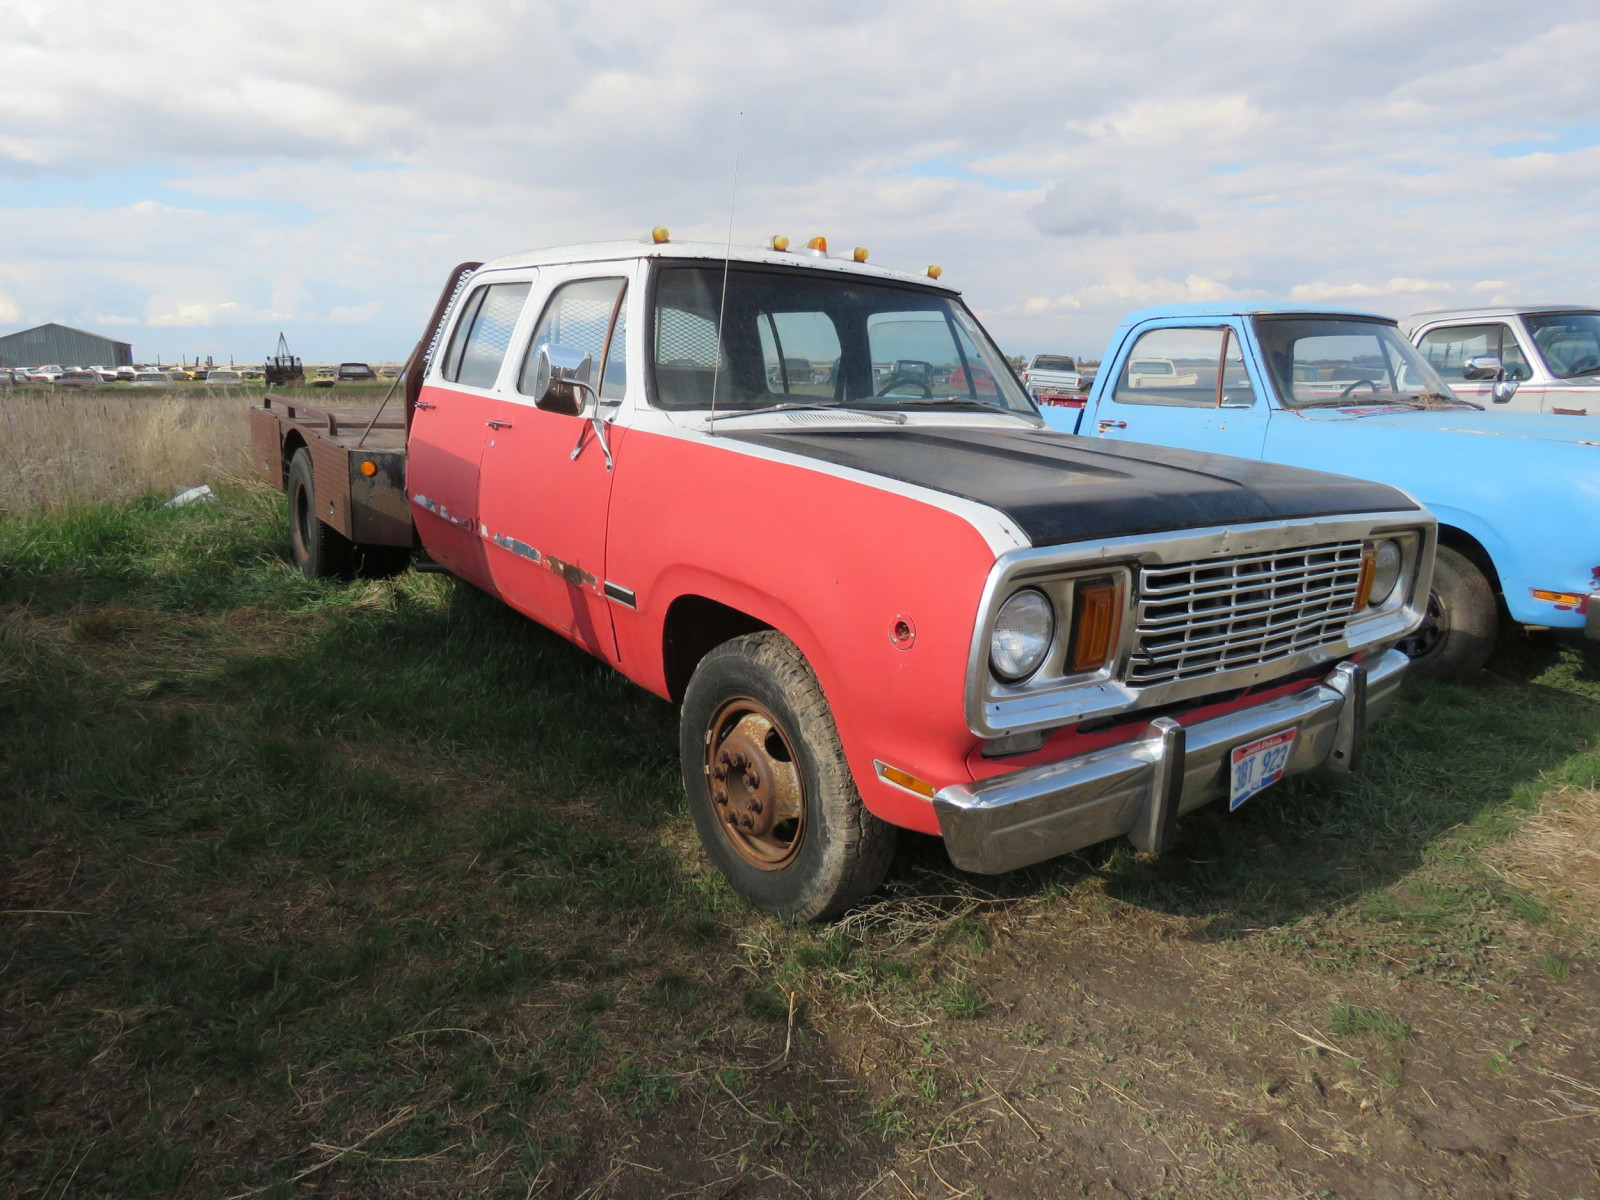 1976 Dodge Crewcab Pickup - Image 2